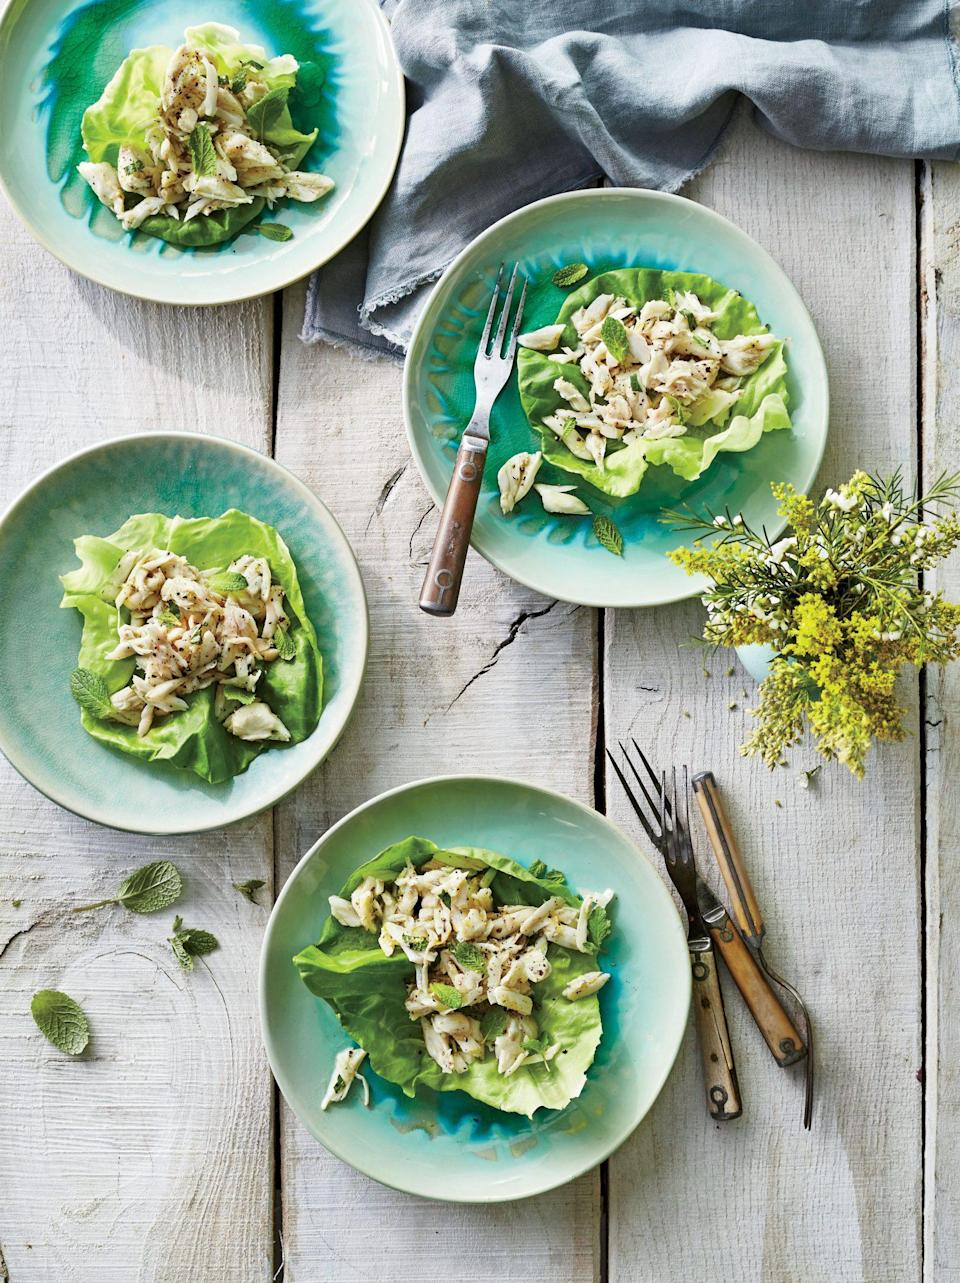 """<p><strong>Recipe:</strong> <a href=""""https://www.southernliving.com/recipes/west-indies-crab-salad-recipe"""" rel=""""nofollow noopener"""" target=""""_blank"""" data-ylk=""""slk:West Indies Crab Salad"""" class=""""link rapid-noclick-resp"""">West Indies Crab Salad</a></p> <p>This recipe couldn't be much simpler, and the results are amazing. Serve this as an appetizer course at your next brunch.</p>"""